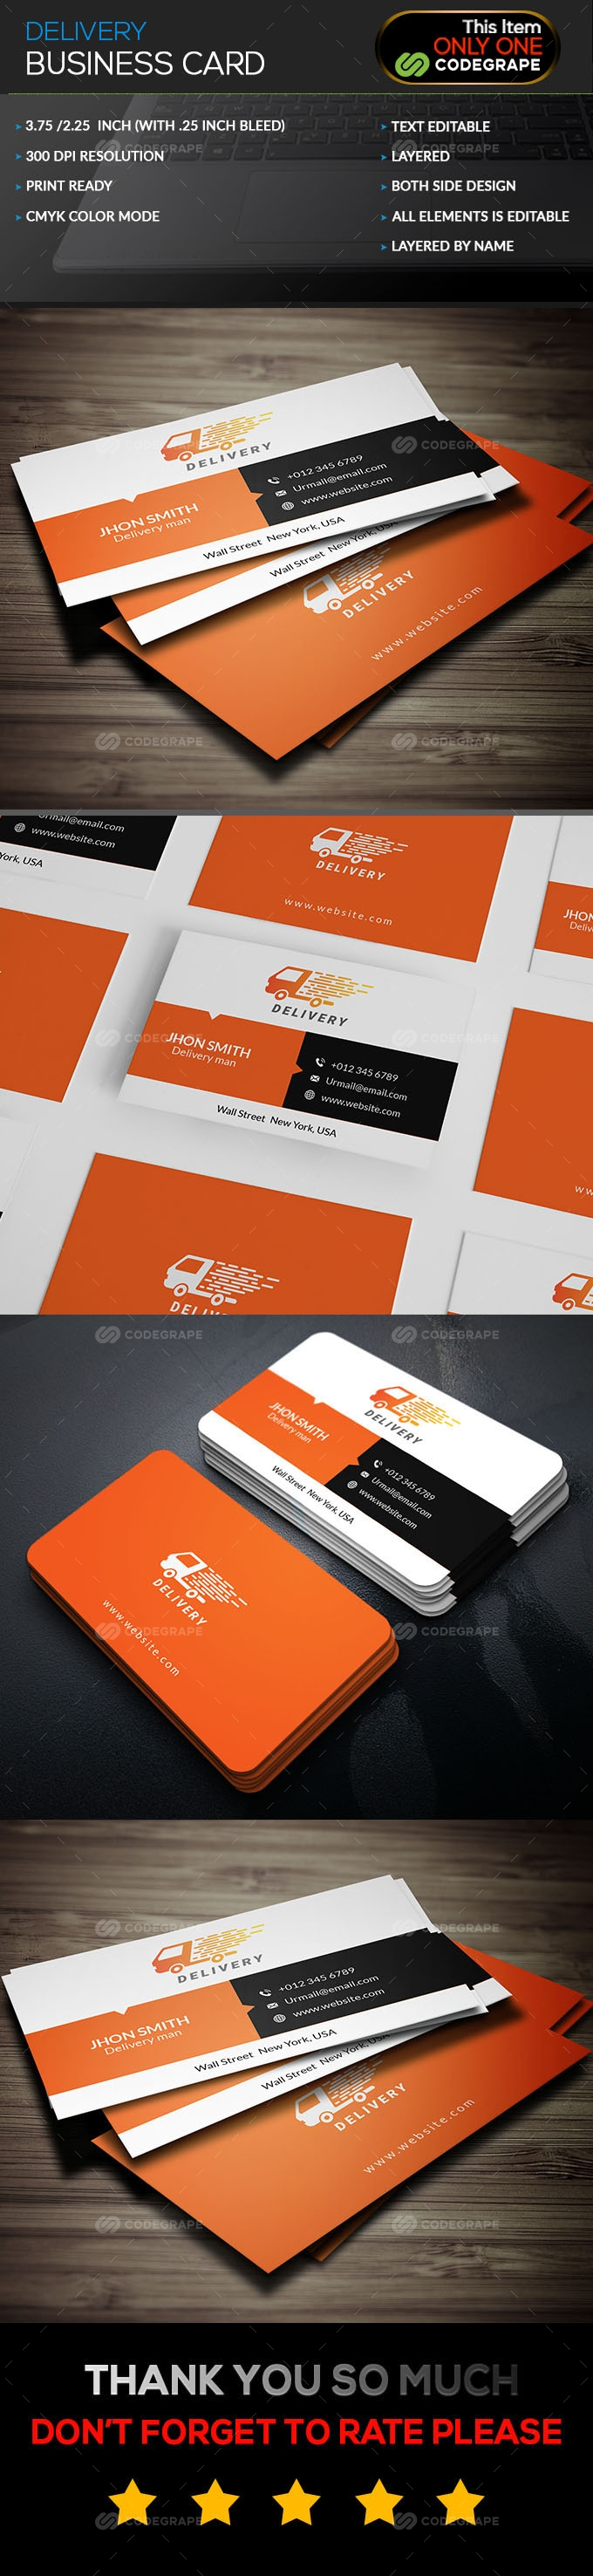 Delivery Business Card